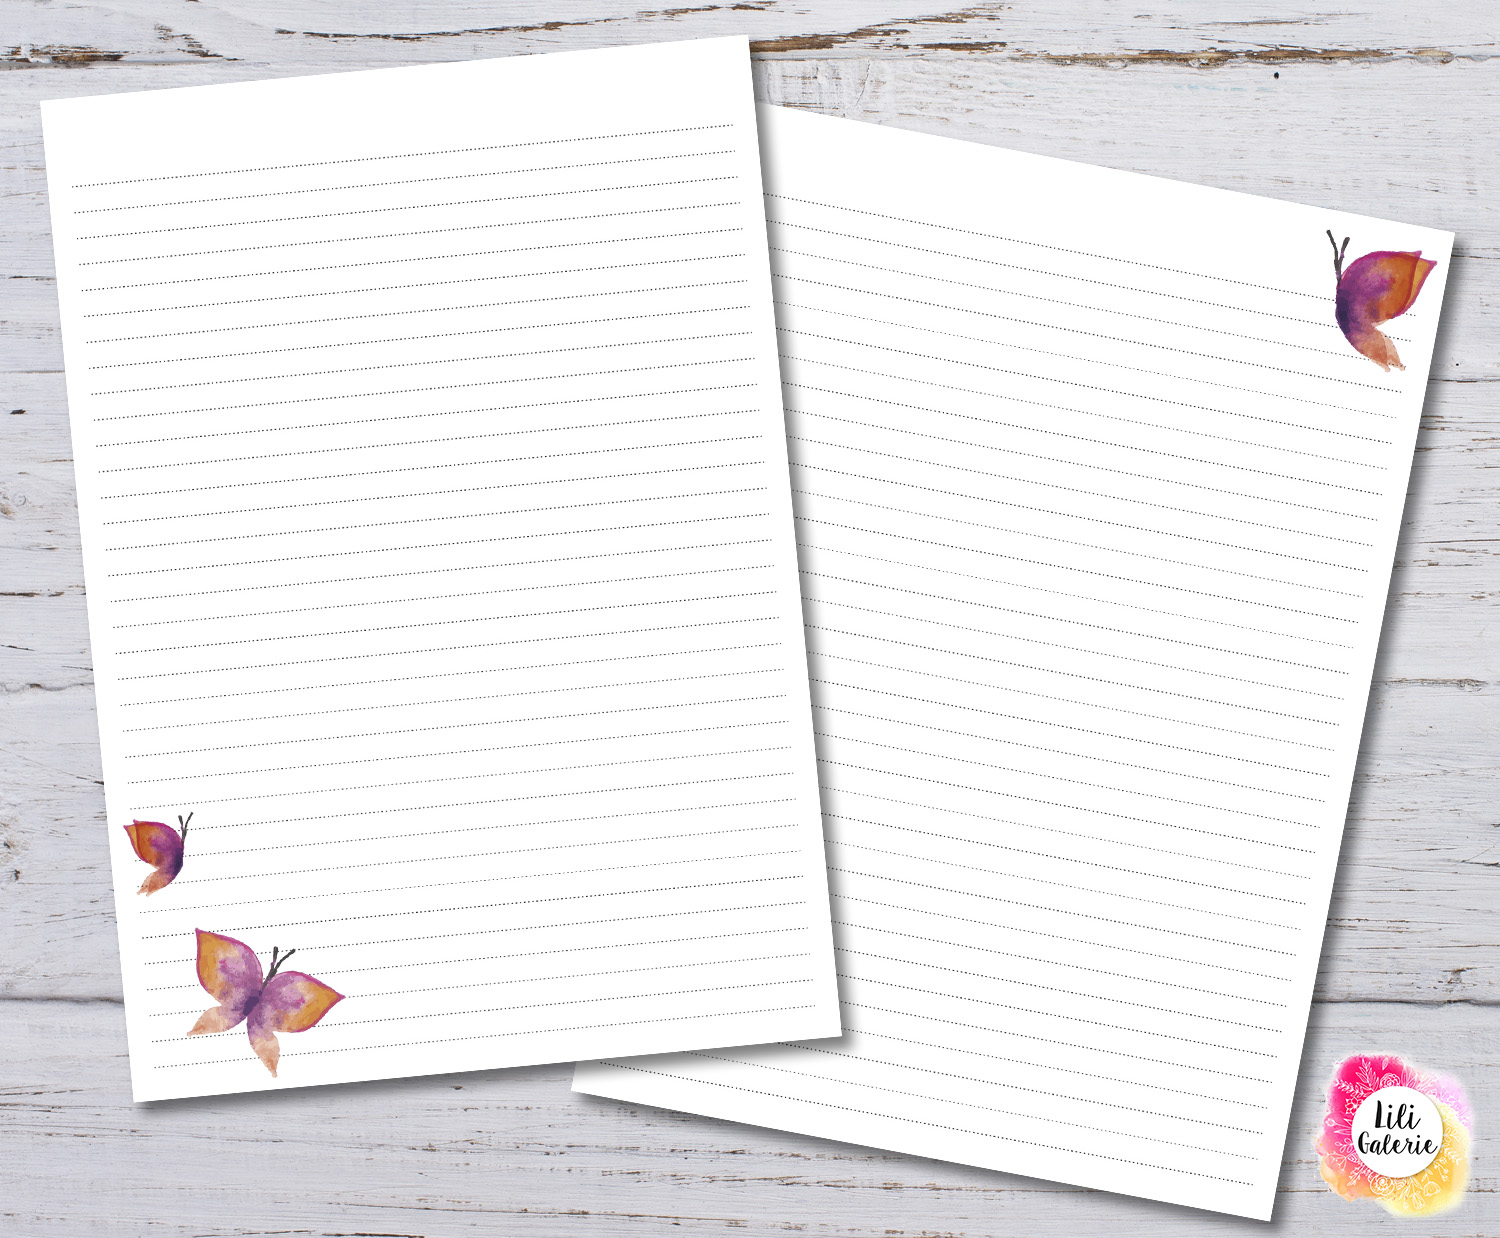 LiliGalerie- paper writing designs